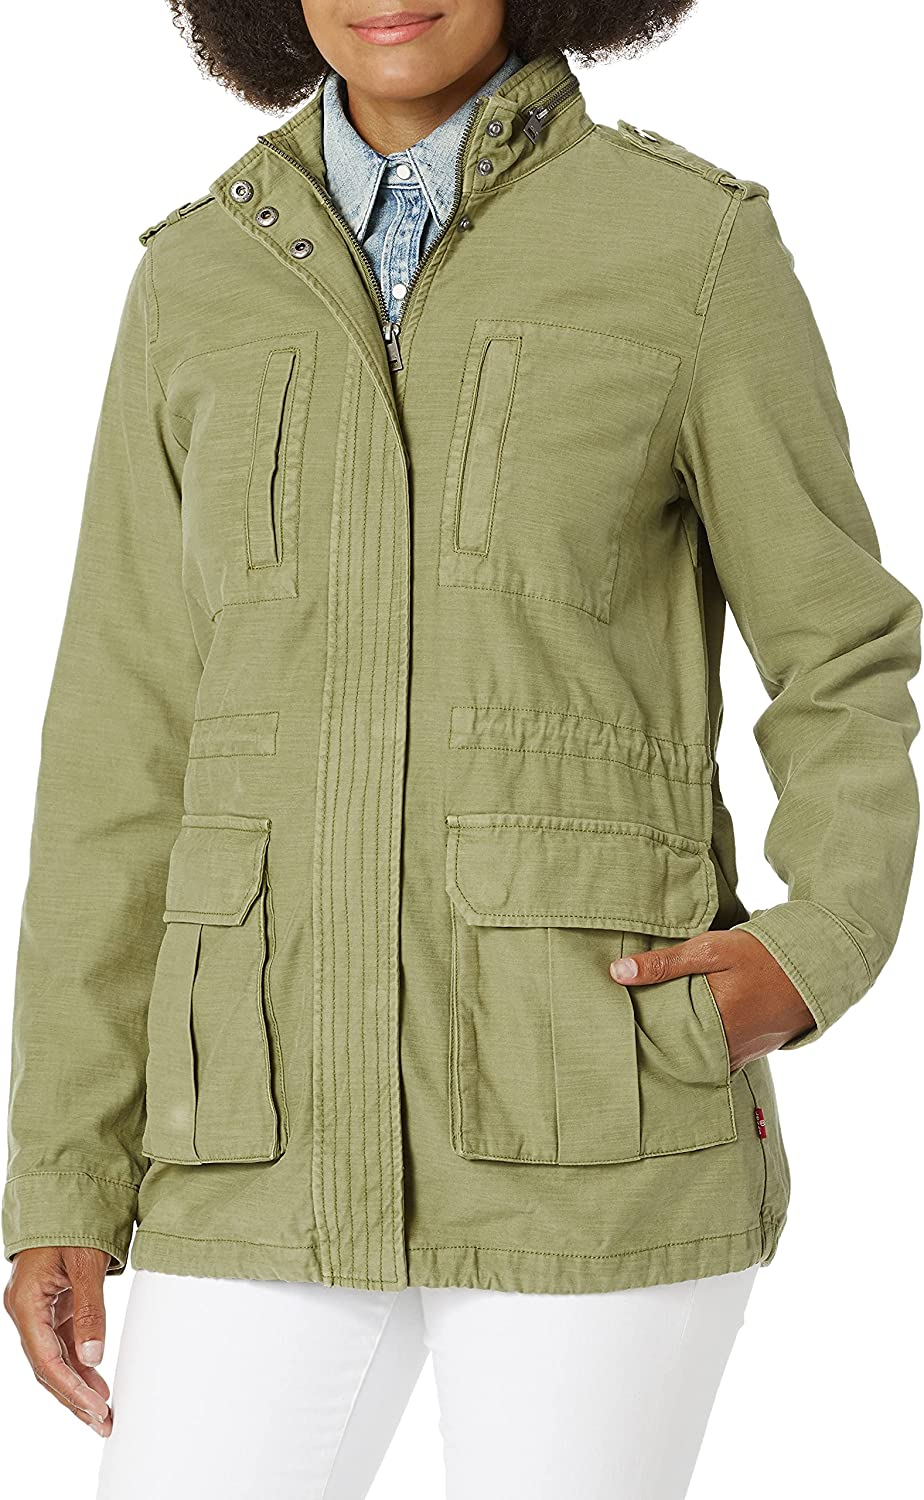 Levi's Ladies Outerwear women's Cotton quality Charlotte Mall assurance Jacket Parka Stand Field